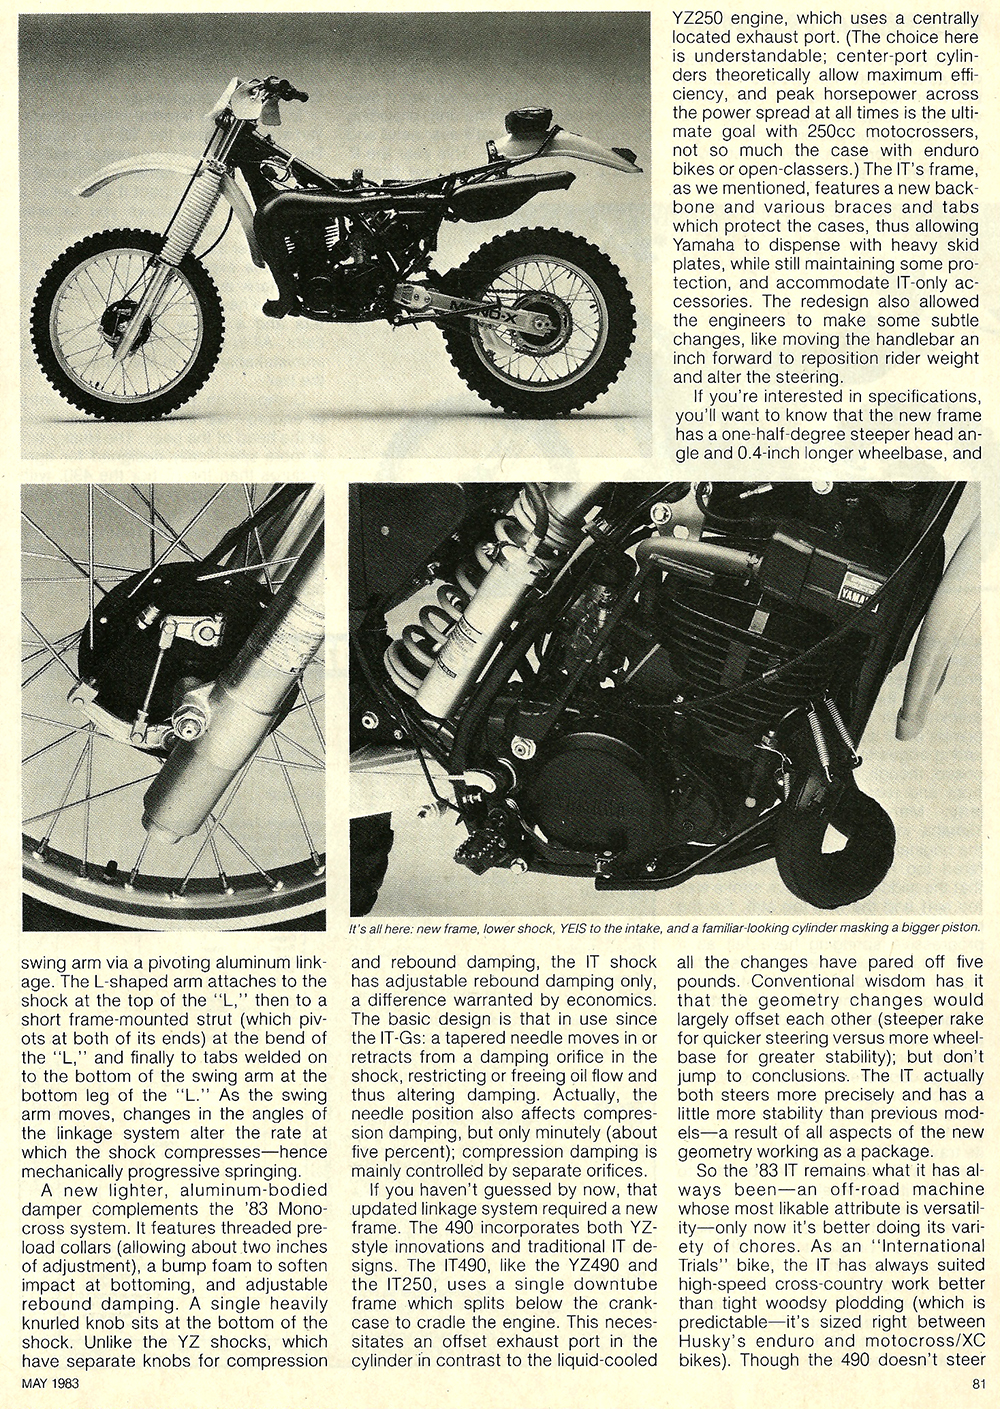 1983 Yamaha IT490K road test 5.jpg